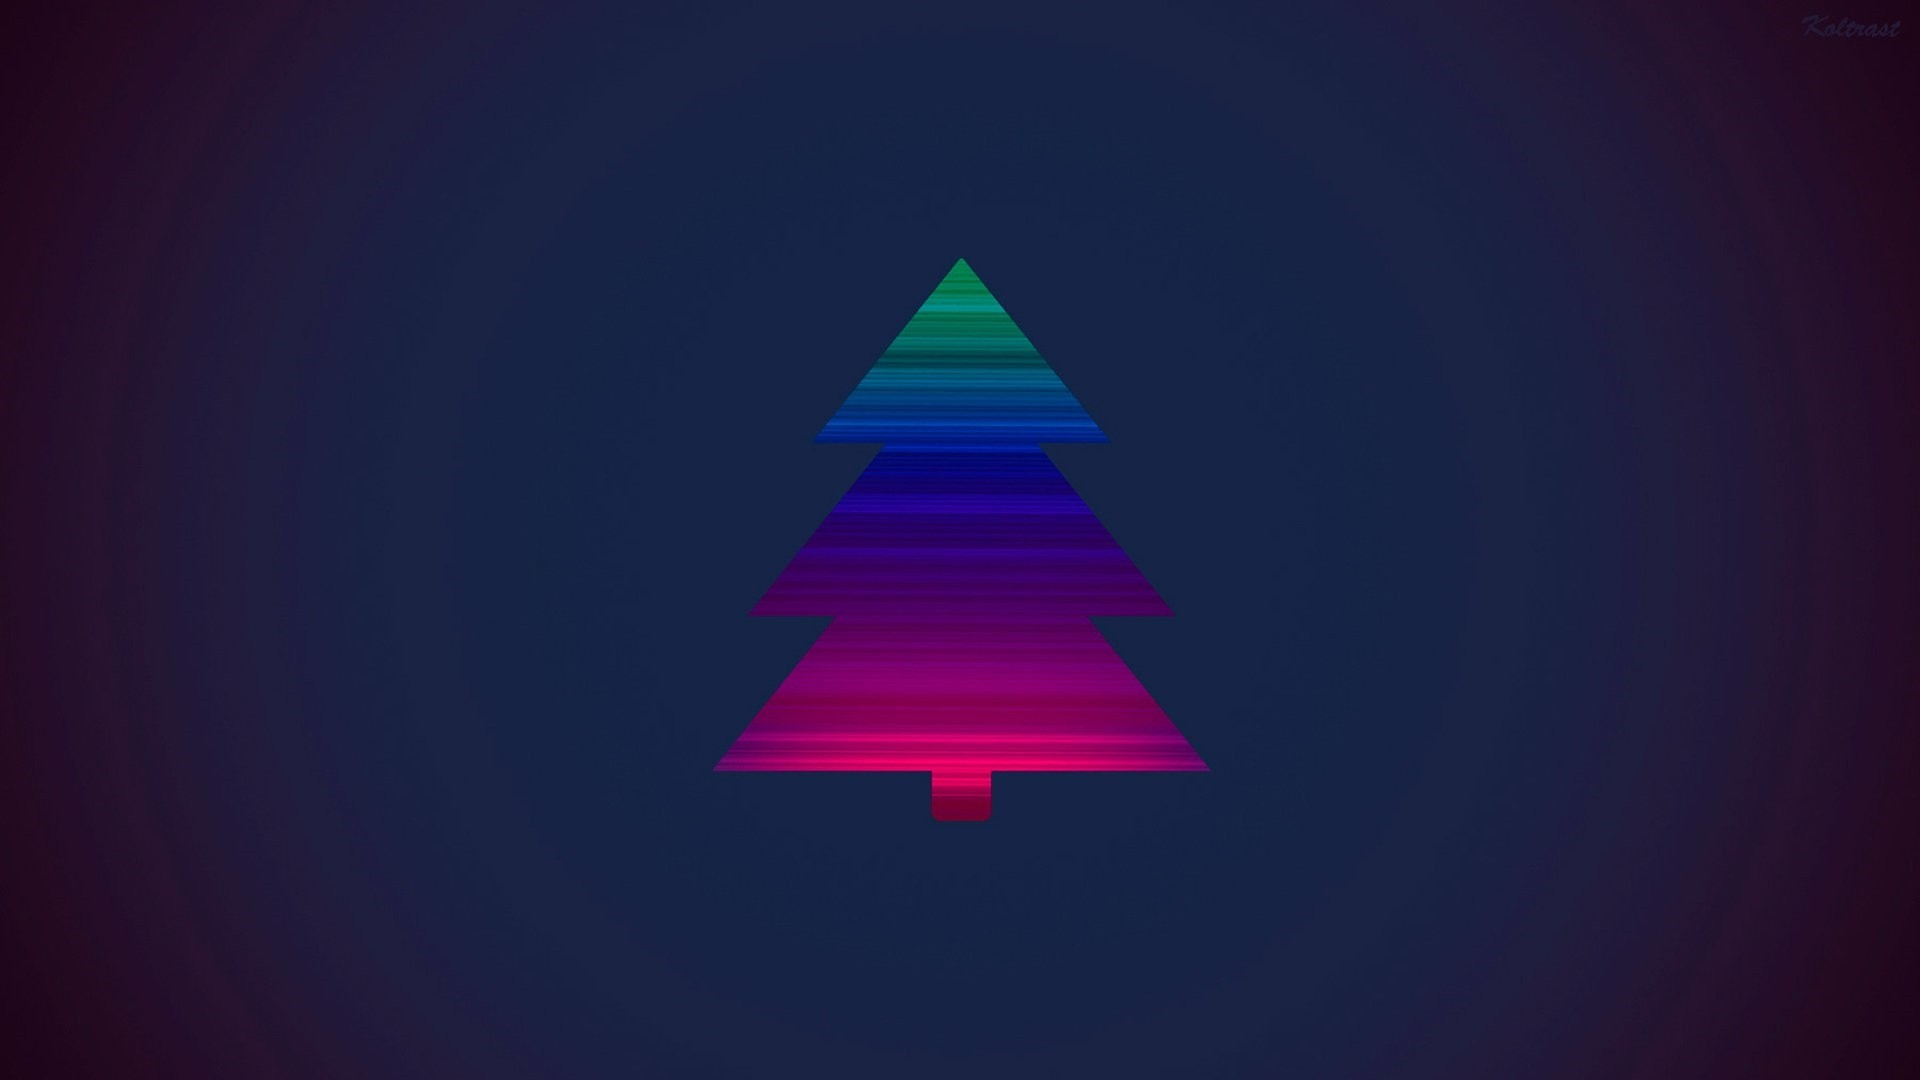 Minimalist Christmas Wallpaper 1920x1080